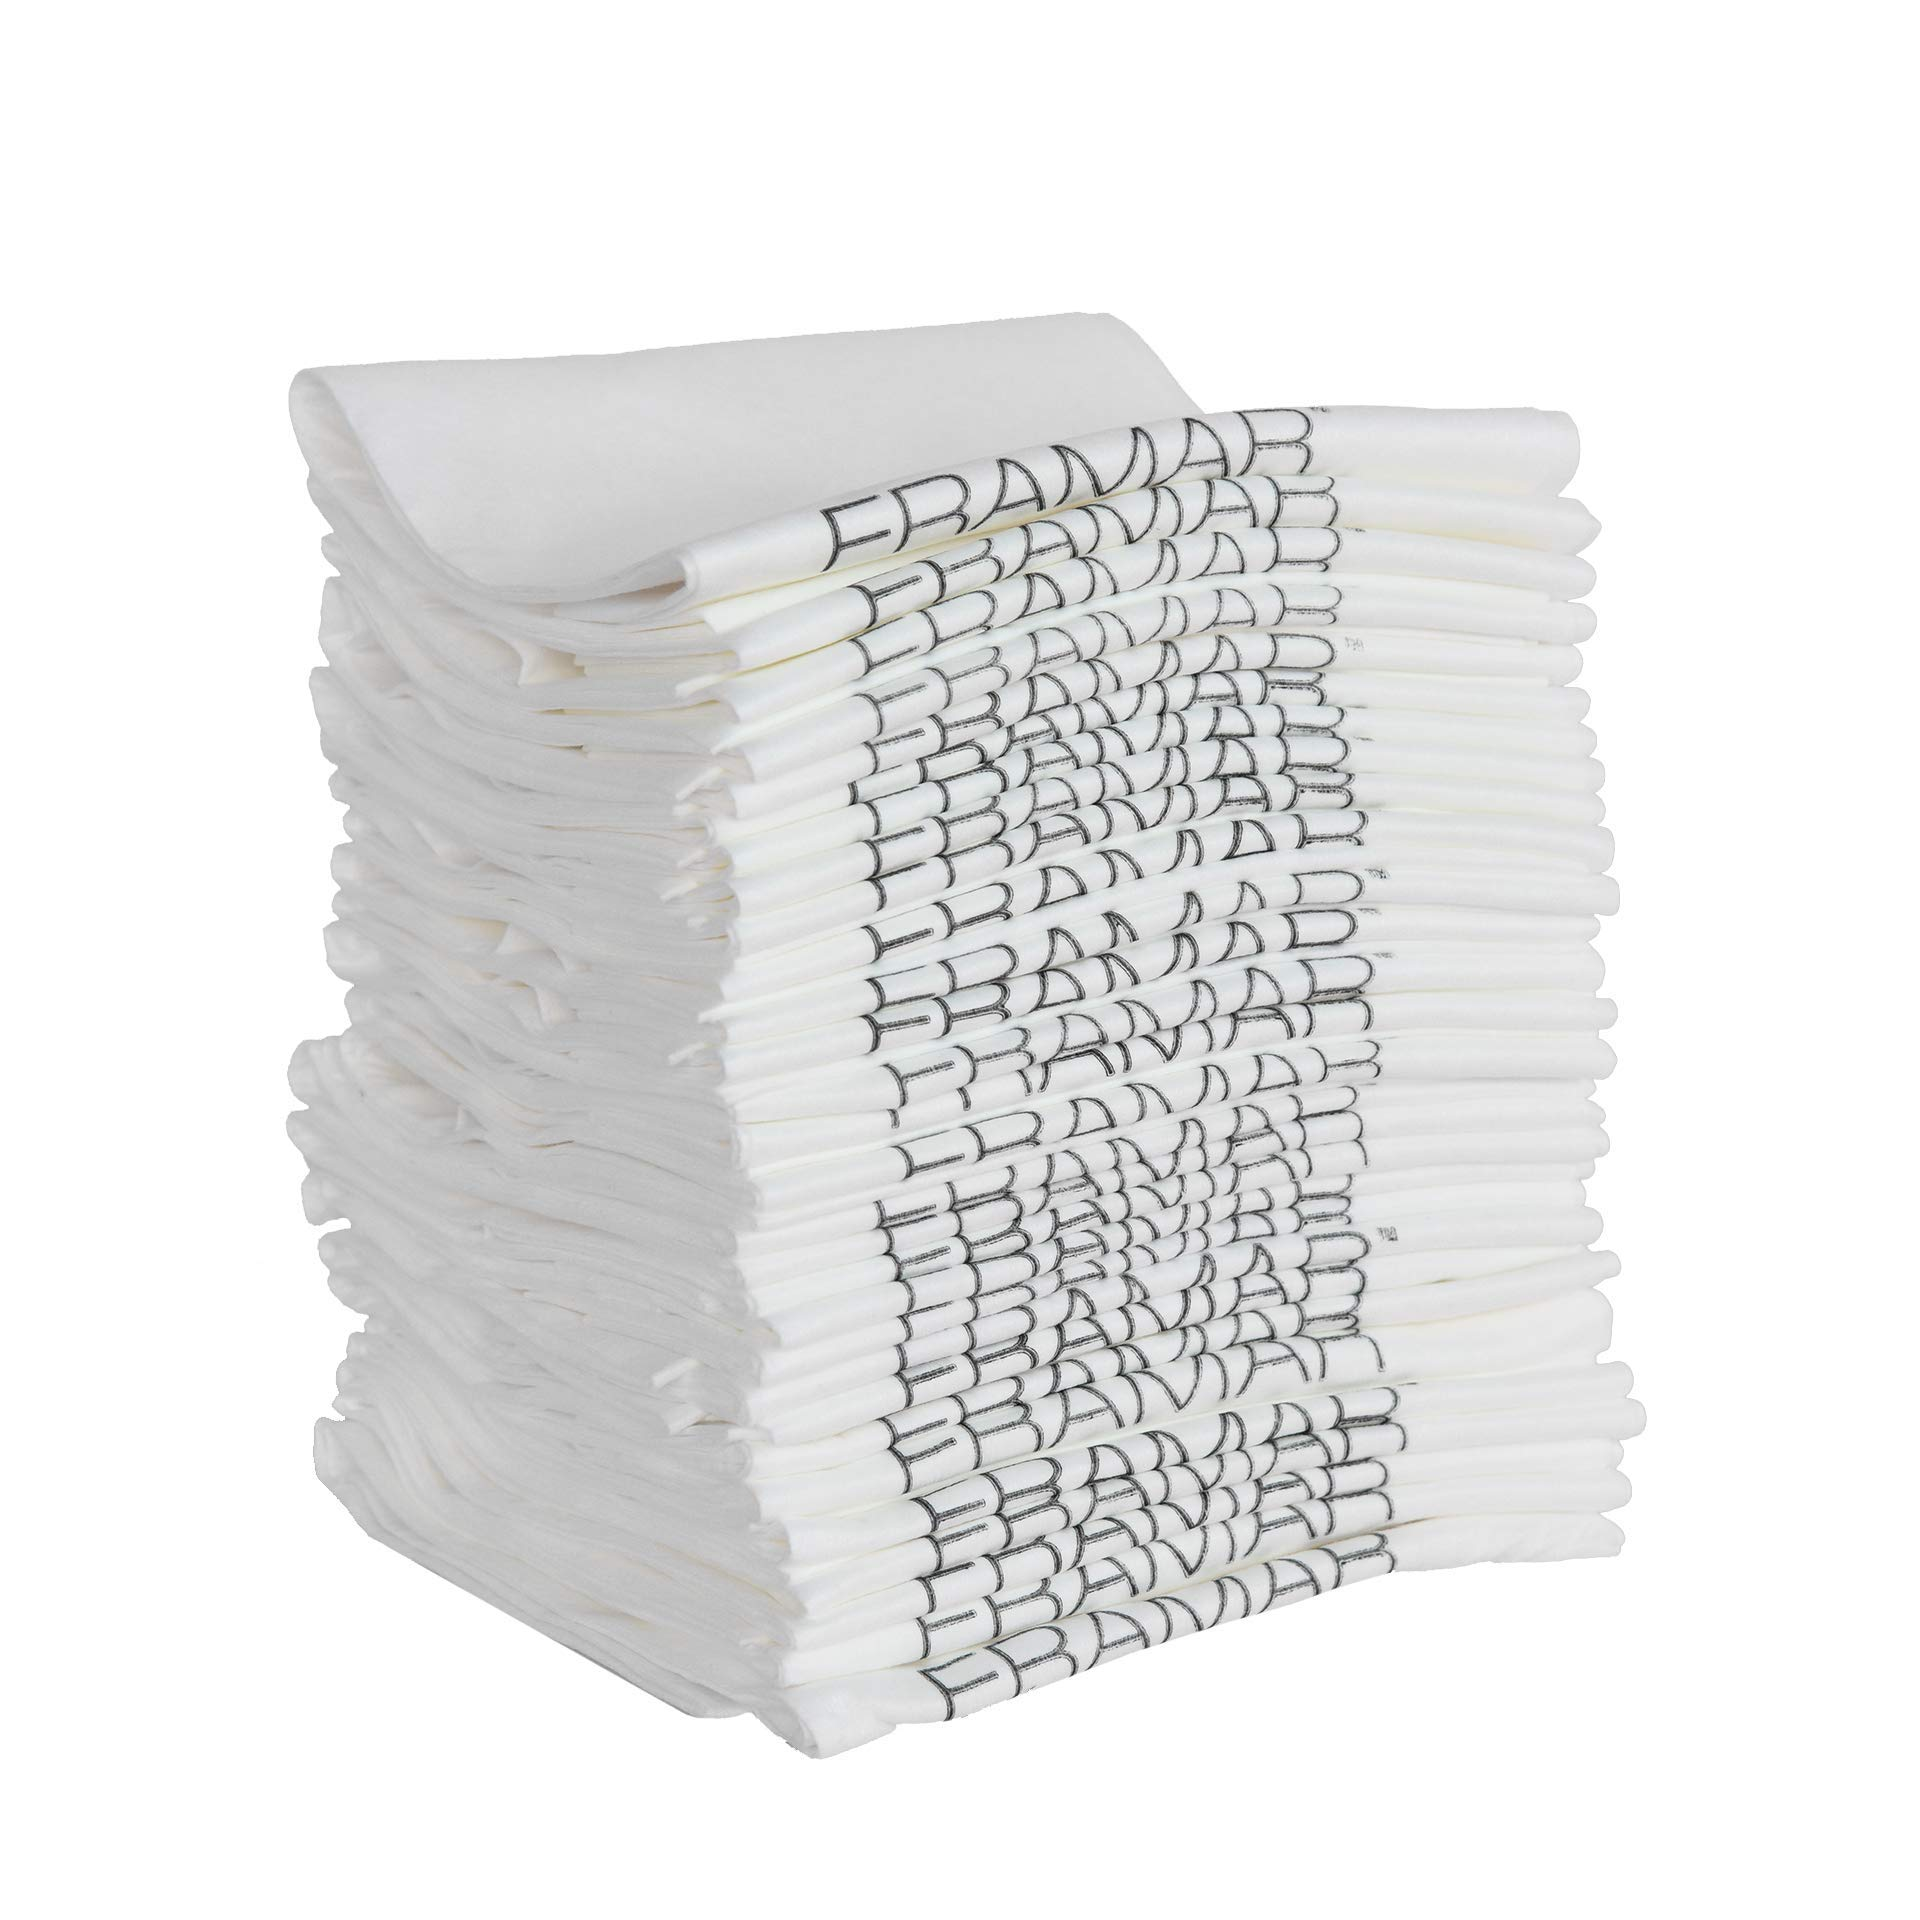 Framar Dry & Byeee Disposable Hair Salon Towels 50 pcs - Rapid Dry Towels - Hygienic, Ecofriendly - Nails Supply, Hand Towels, White Towels - Biodegradable - 50 Count by FRAMAR